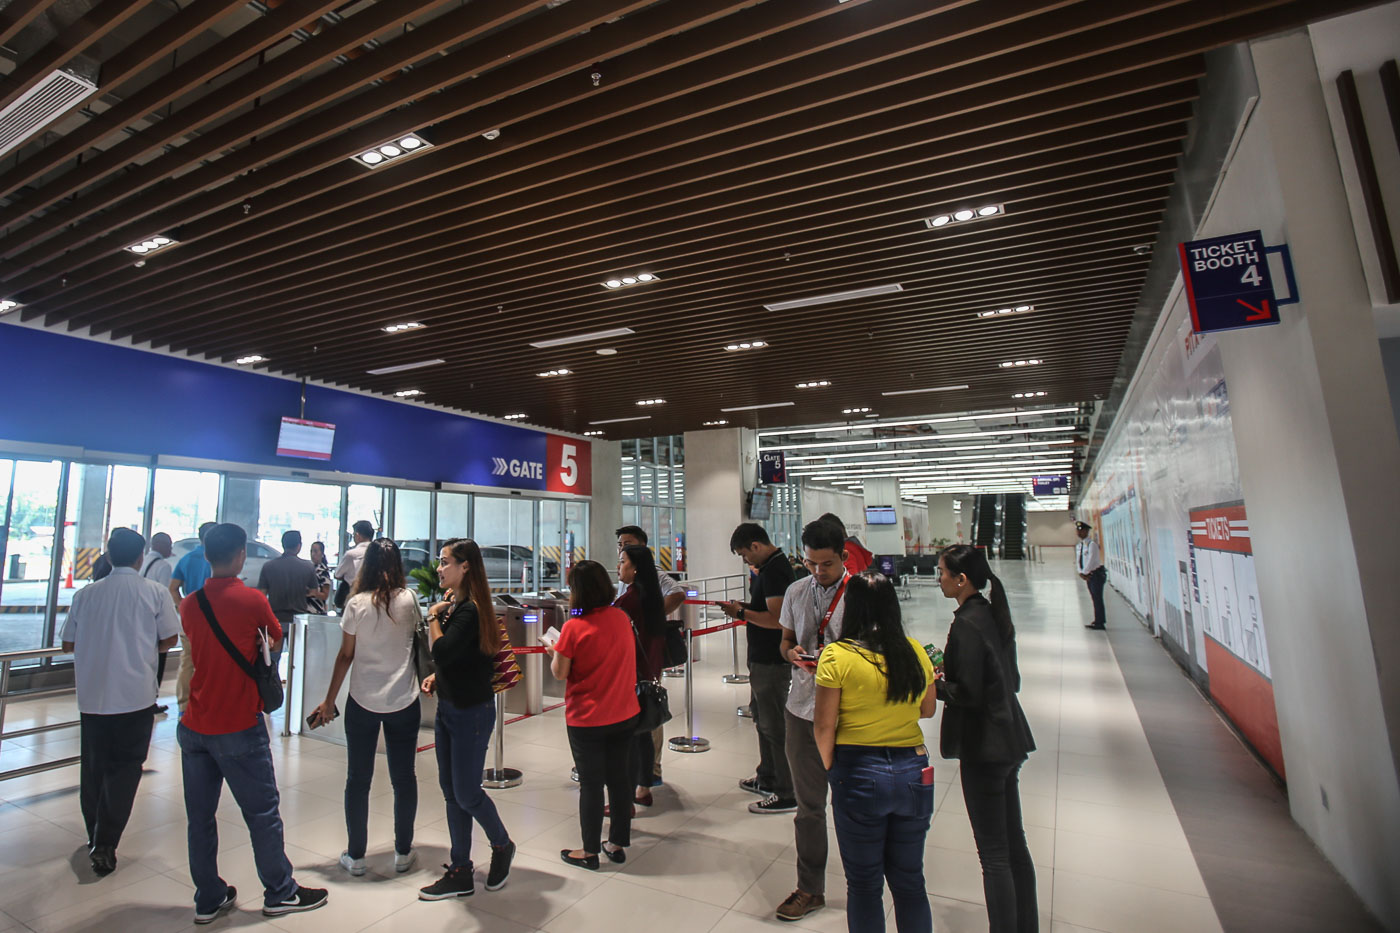 BOARDING GATE. Monitors showing trip schedules for passengers to check the status of their trips. Photo by Ben Nabong/Rappler